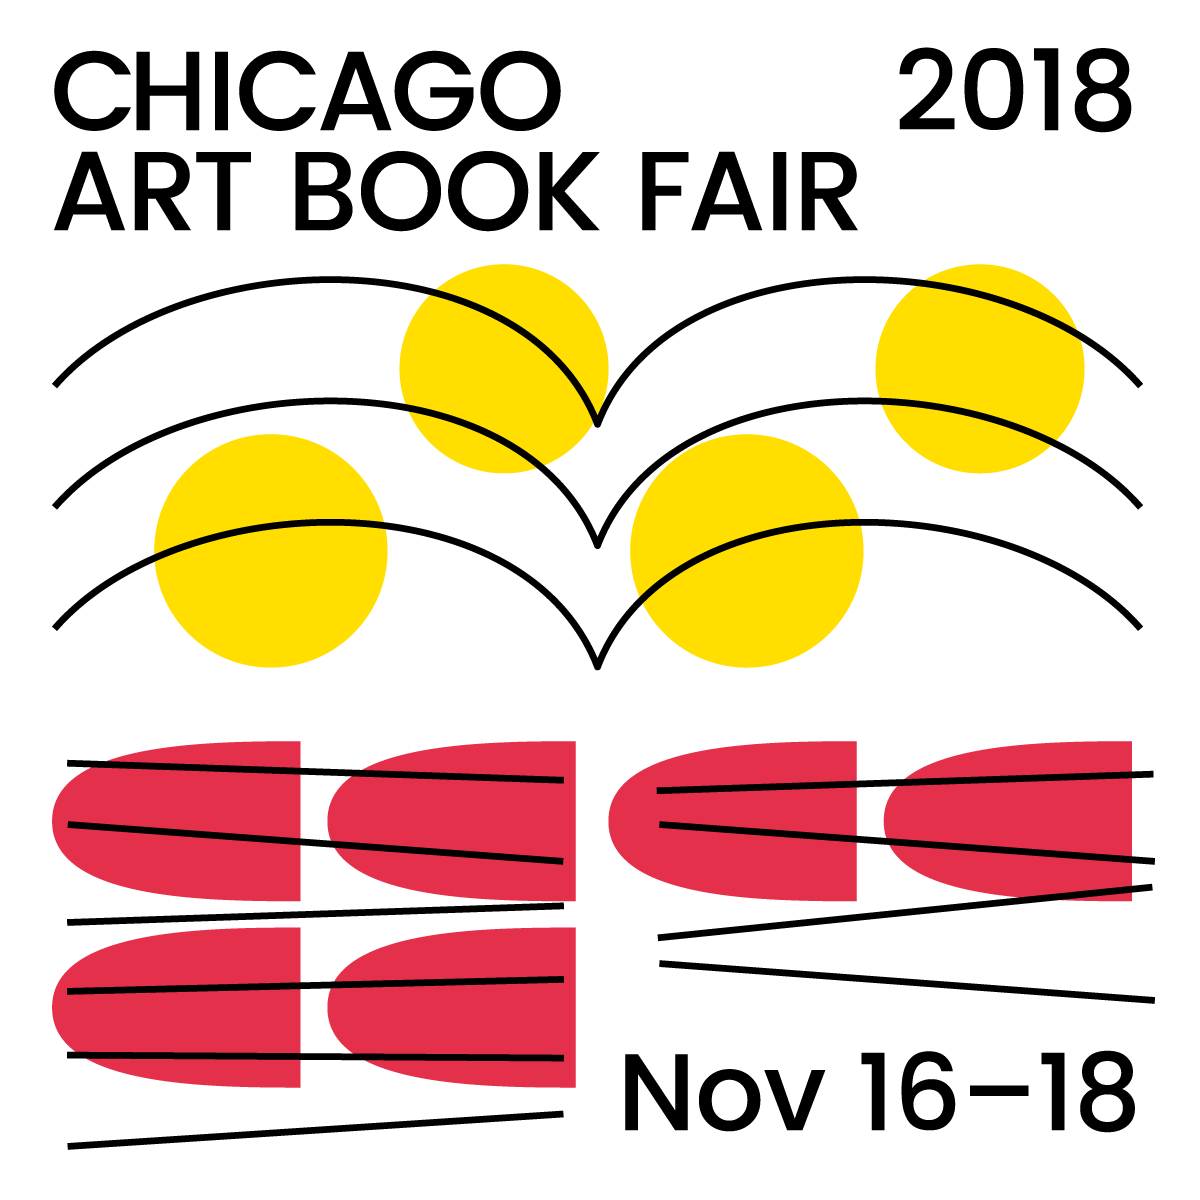 Chicago Athletic Association, 12 S Michigan Ave  Table 109 | Friday, 5-9pm | Saturday, 11-7pm | Sunday, 12-6pm